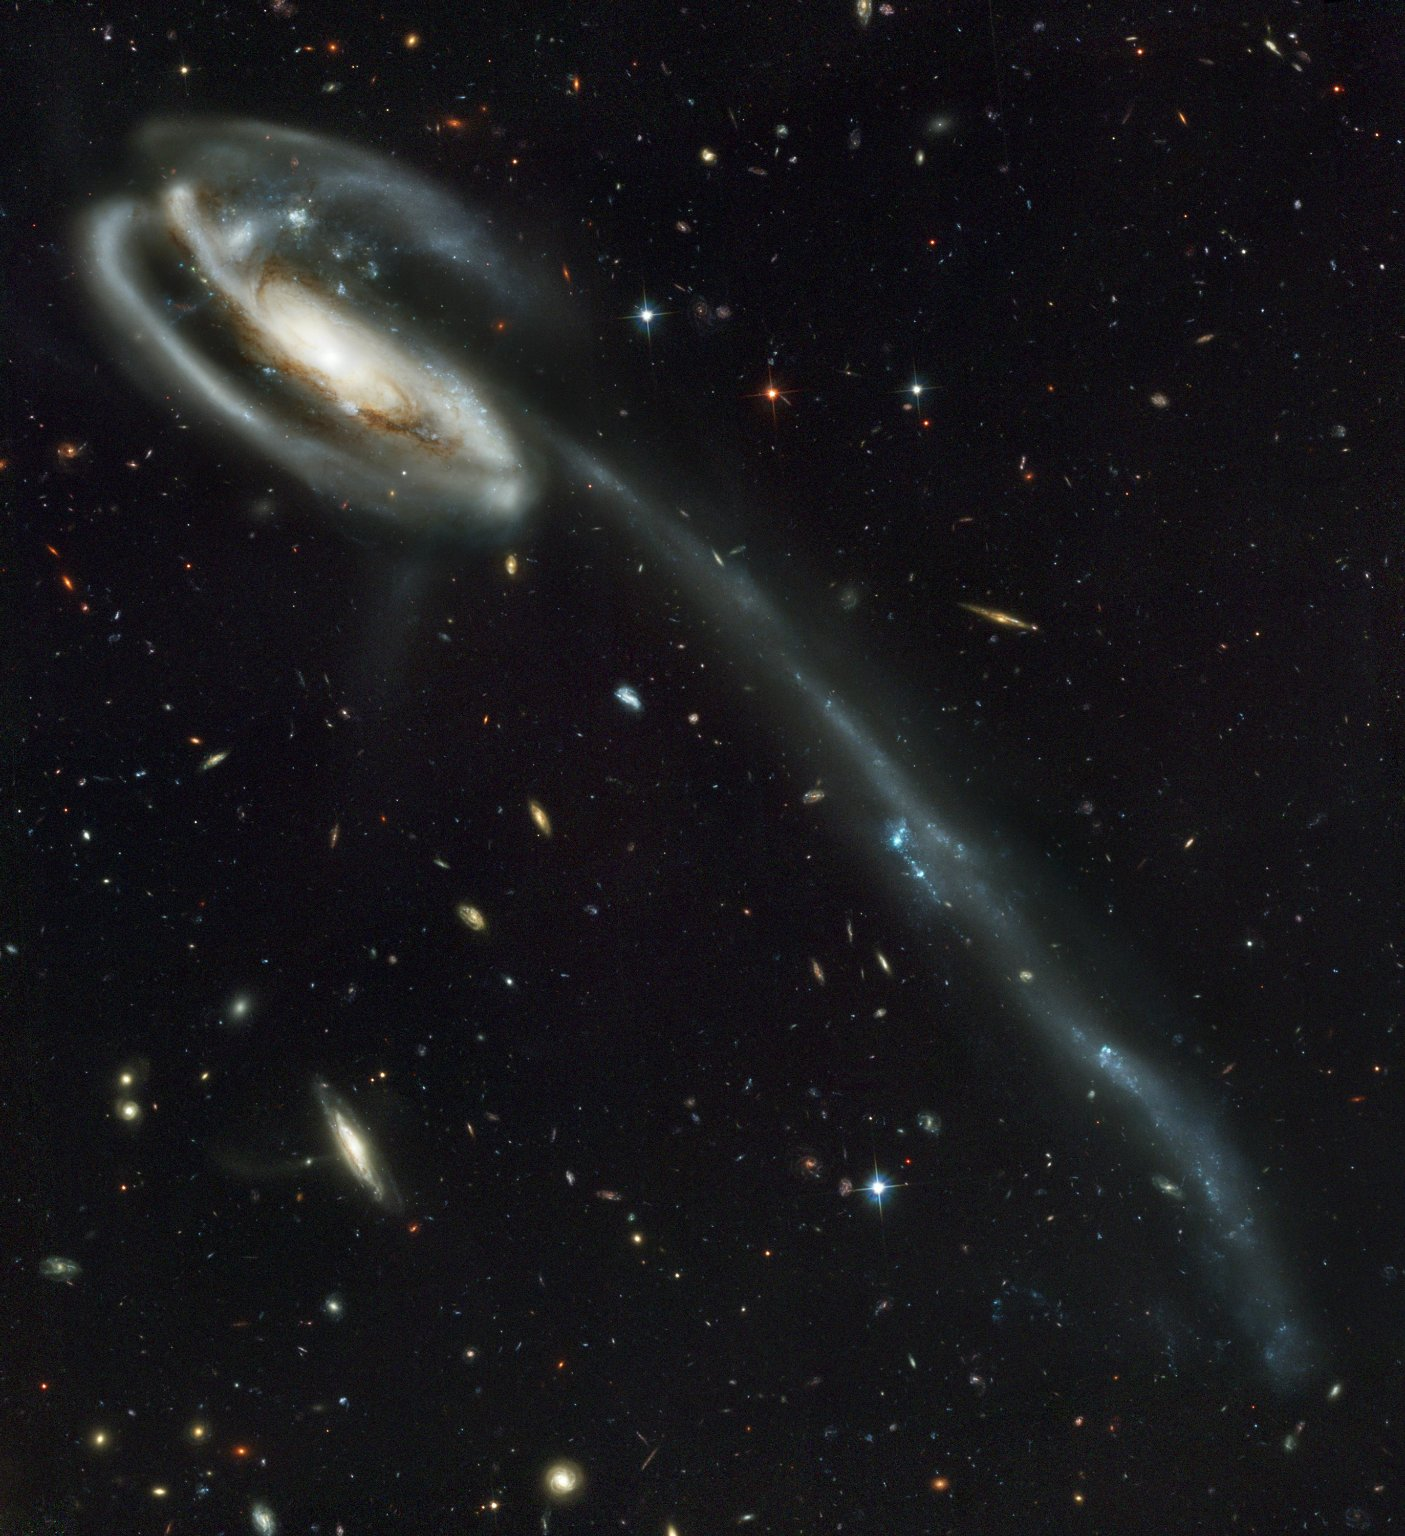 """This picture of the galaxy UGC 10214 was was taken by the Advanced Camera for Surveys (ACS), which was installed aboard the Hubble Space Telescope (HST) in March 2002 during HST Servicing Mission 3B (STS-109 mission). Dubbed the """"Tadpole,"""" this spiral galaxy is unlike the textbook images of stately galaxies. Its distorted shape was caused by a small interloper, a very blue, compact galaxy visible in the upper left corner of the more massive Tadpole. The Tadpole resides about 420 million light-years away in the constellation Draco. Seen shining through the Tadpole's disk, the tiny intruder is likely a hit-and-run galaxy that is now leaving the scene of the accident. Credit: NASA / Marshall Space Flight Center"""